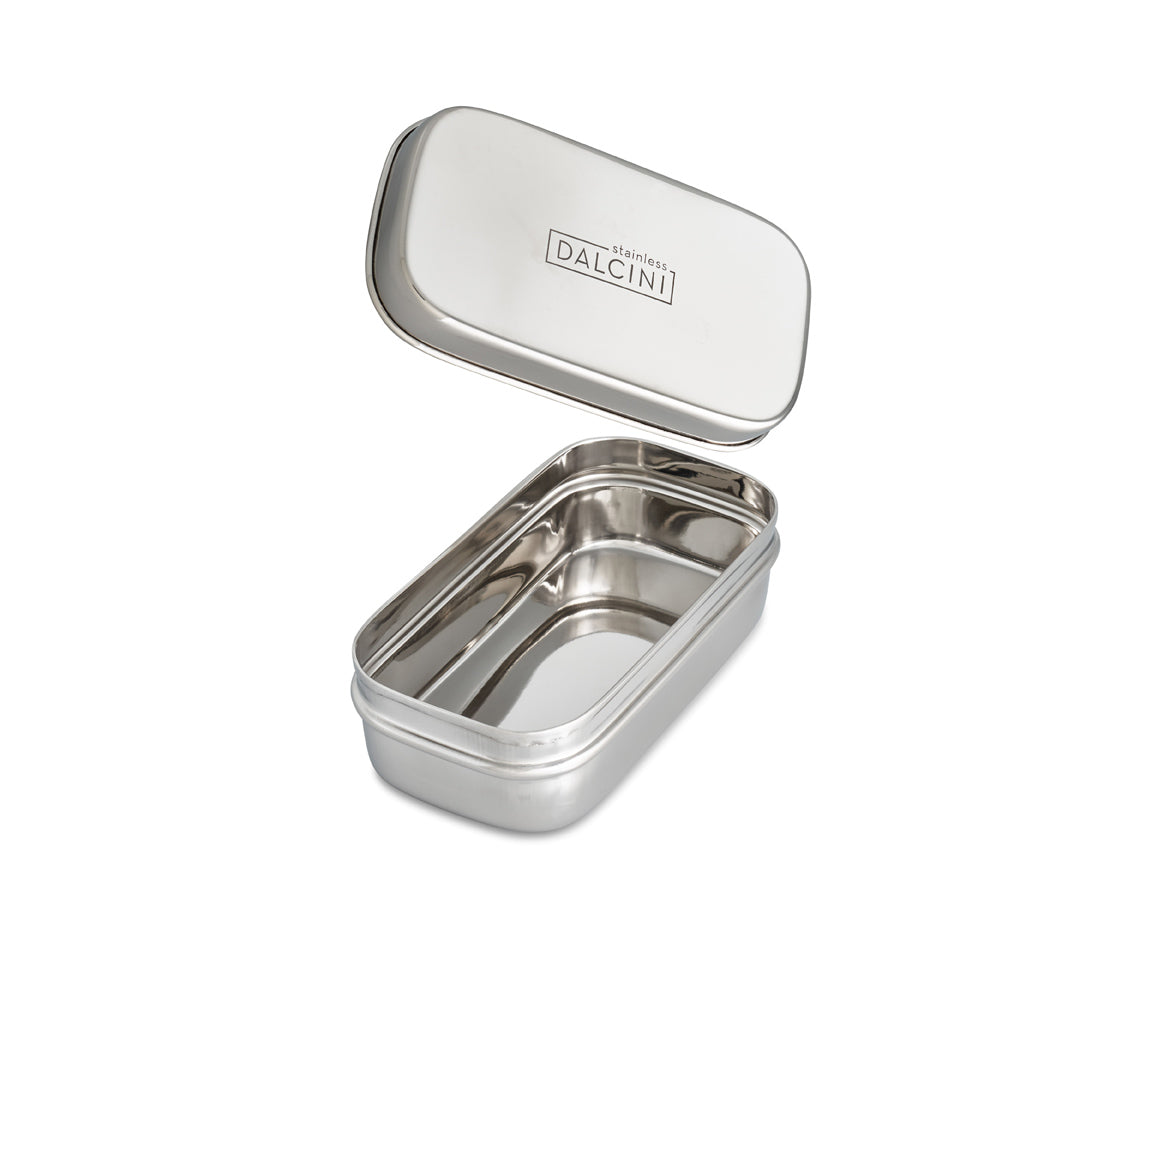 Dalcini Stainless Little Snacker Food Container